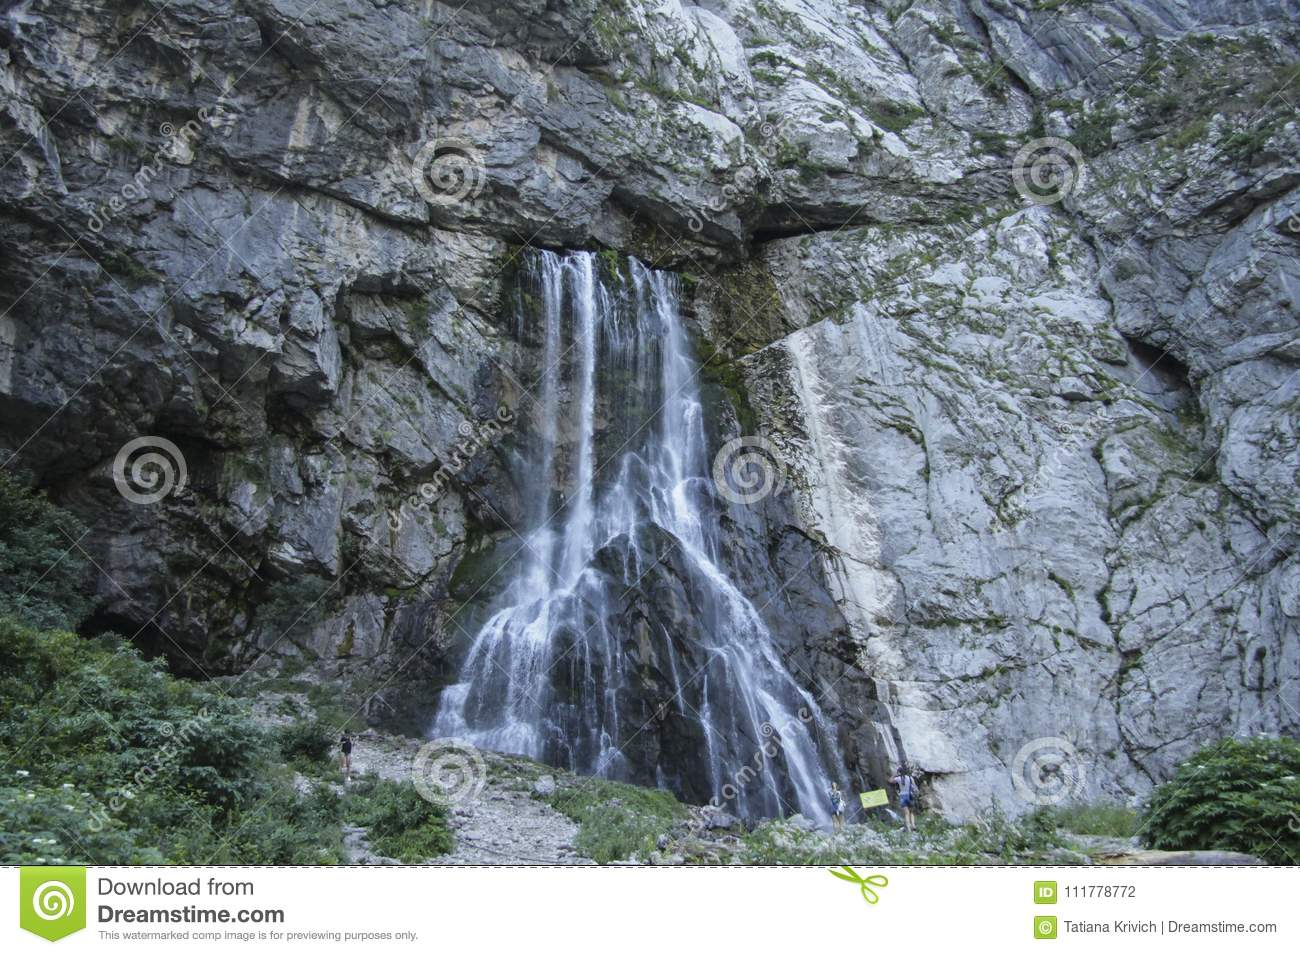 Vertical picturesque natural landscape mountain waterfall